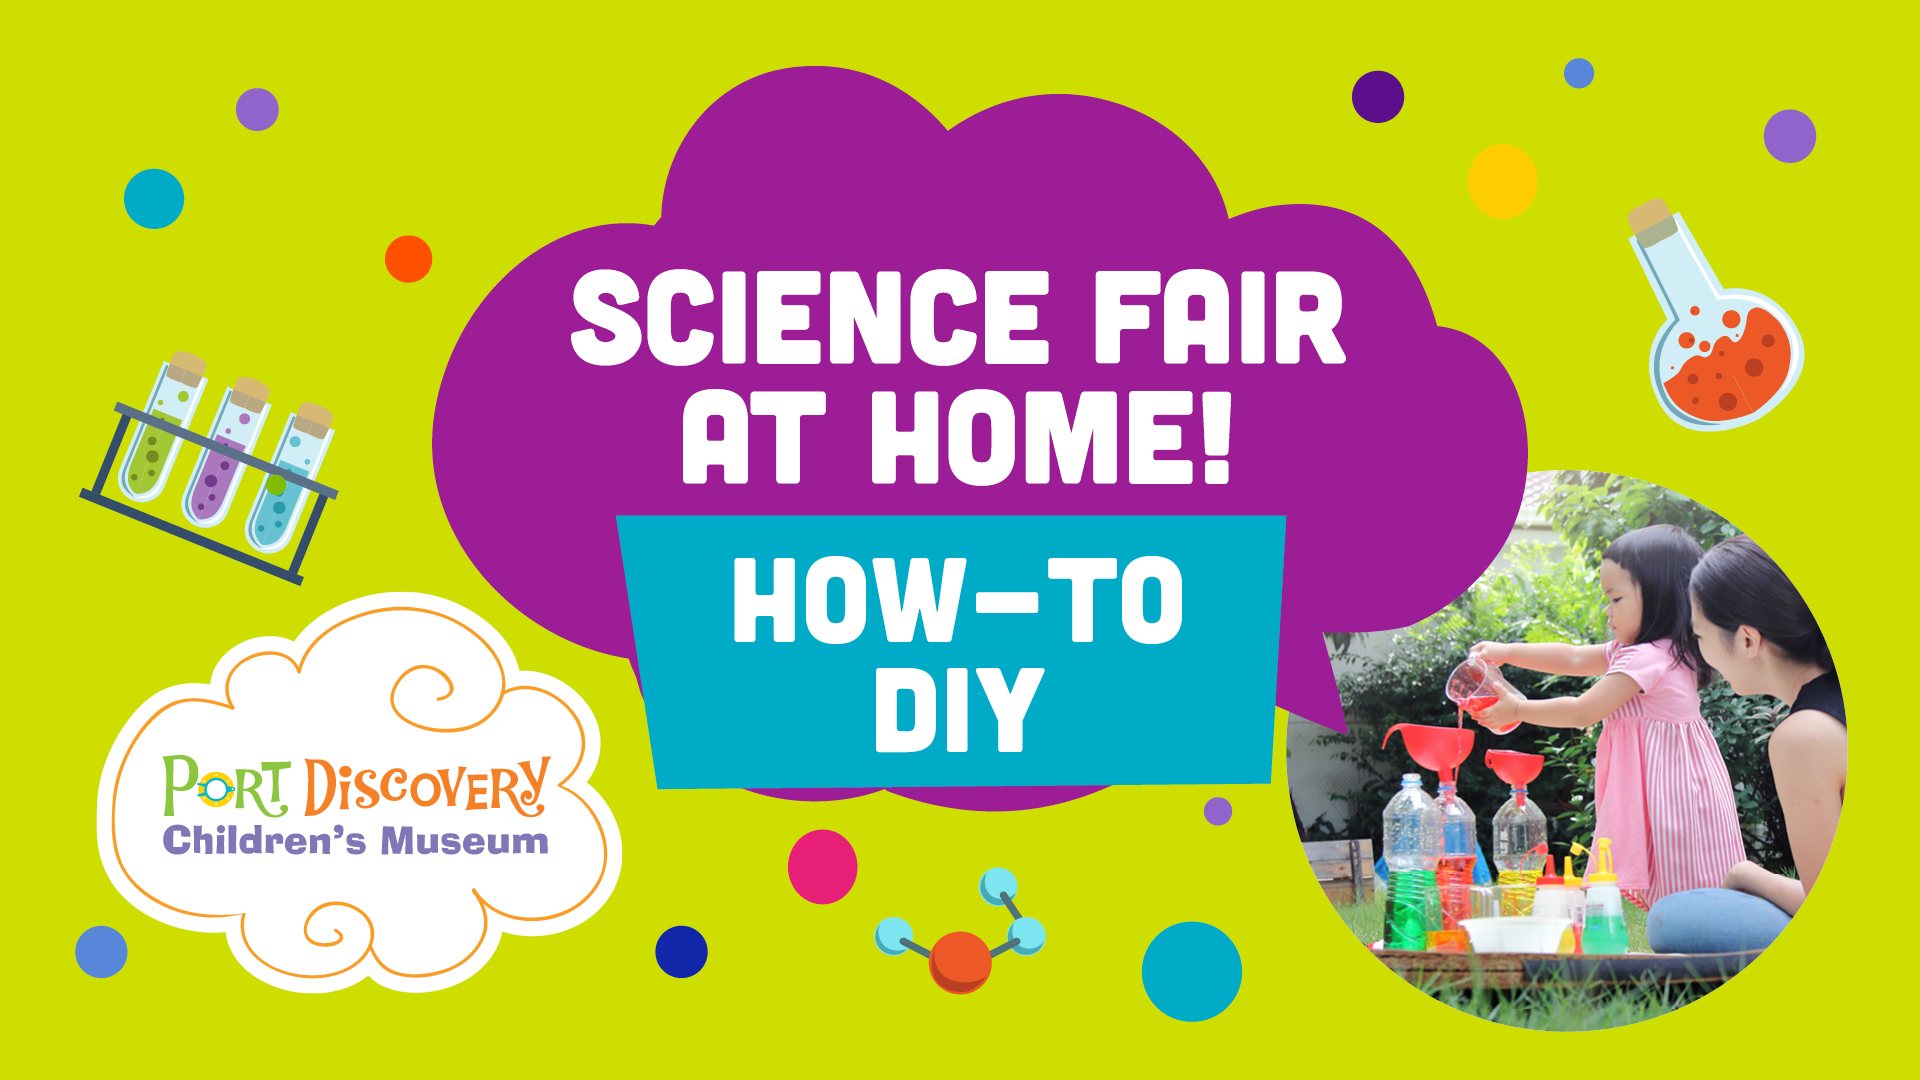 How To DIY: At Home Science Fair